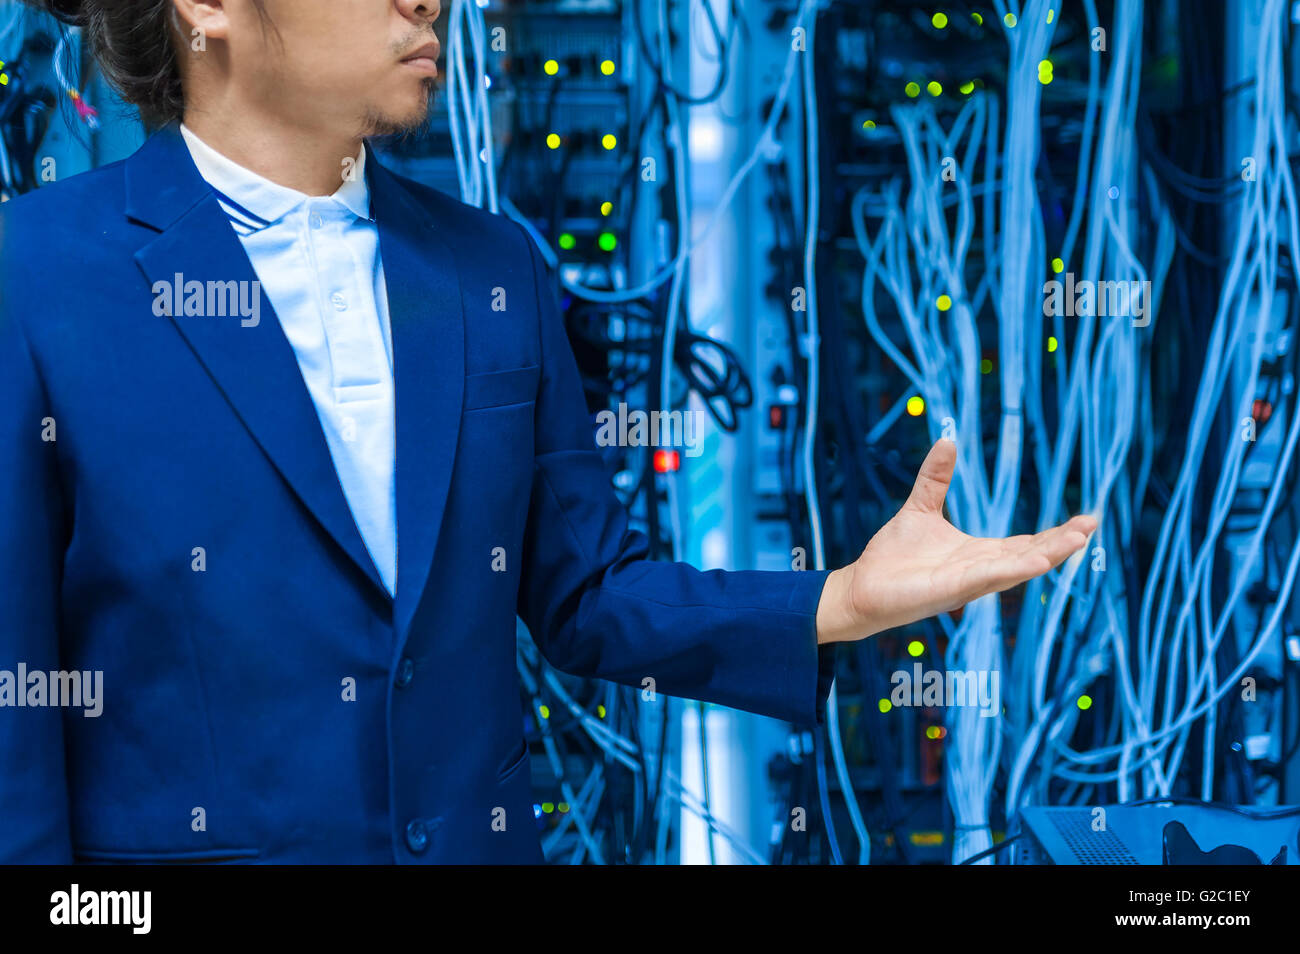 People fix core switch in network room . - Stock Image